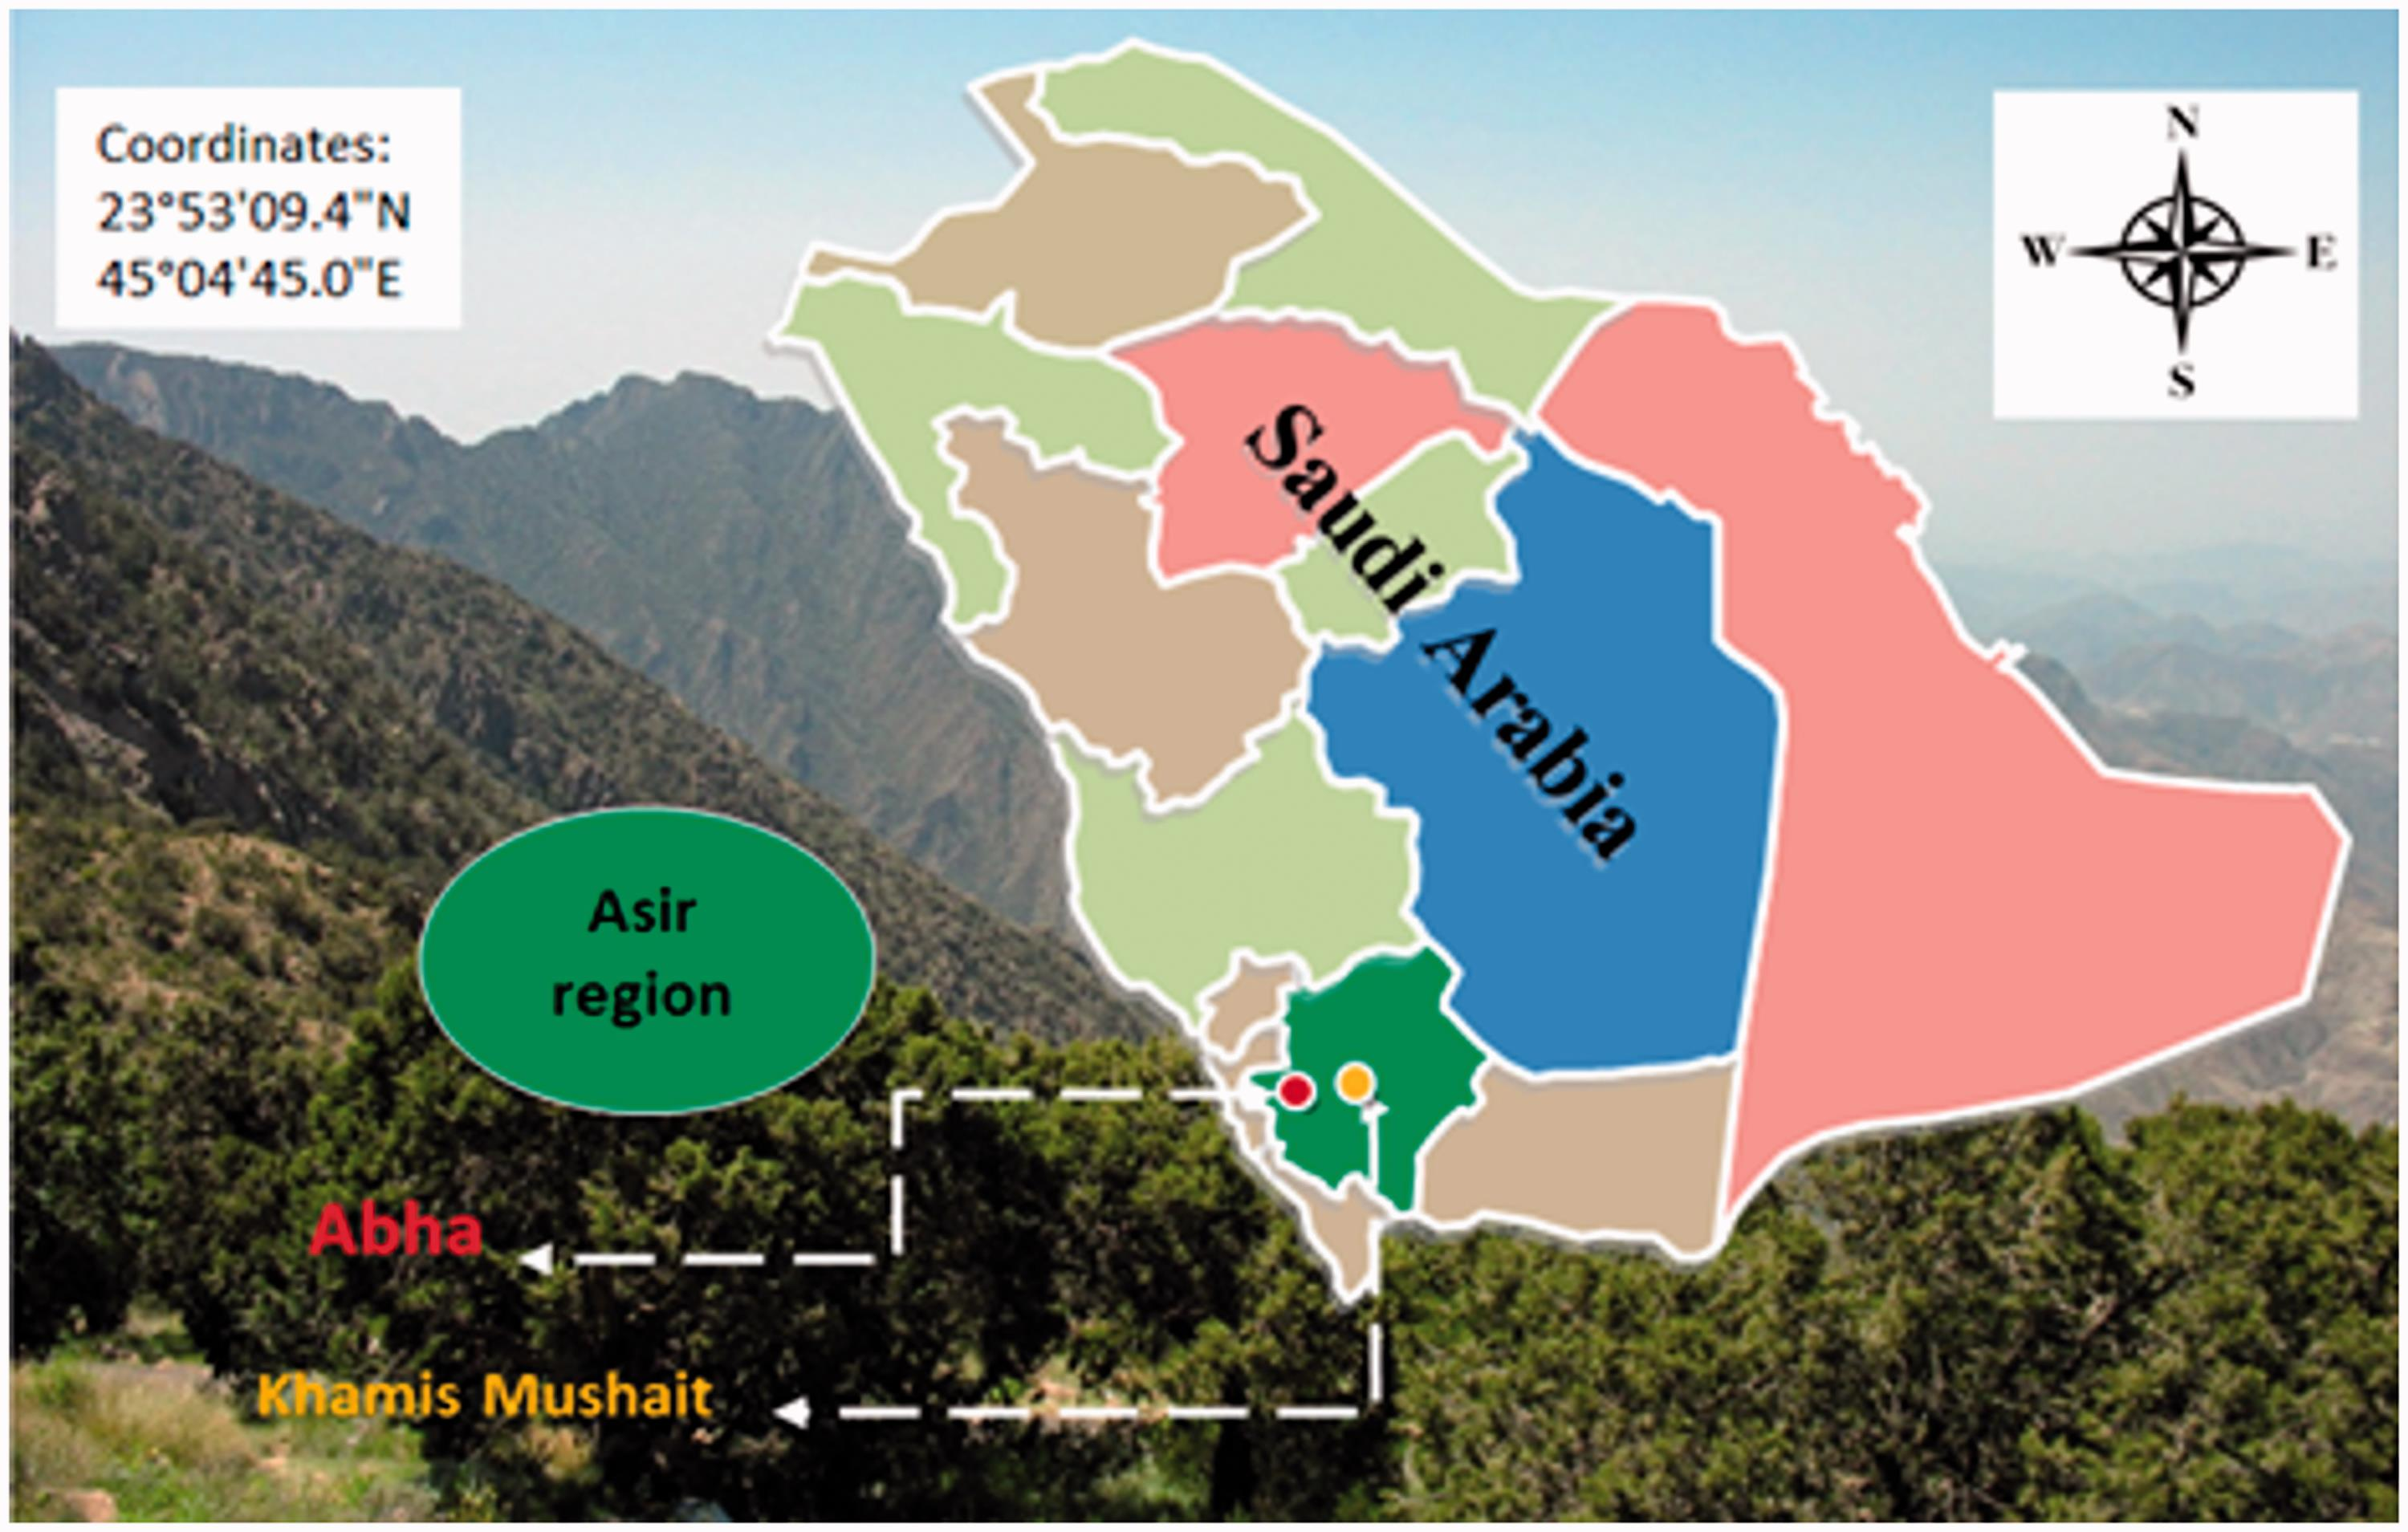 Ethnobotanical Phytochemical And Biological Study Of Tamarix Aphylla And Aerva Javanica Medicinal Plants Growing In The Asir Region Saudi Arabia